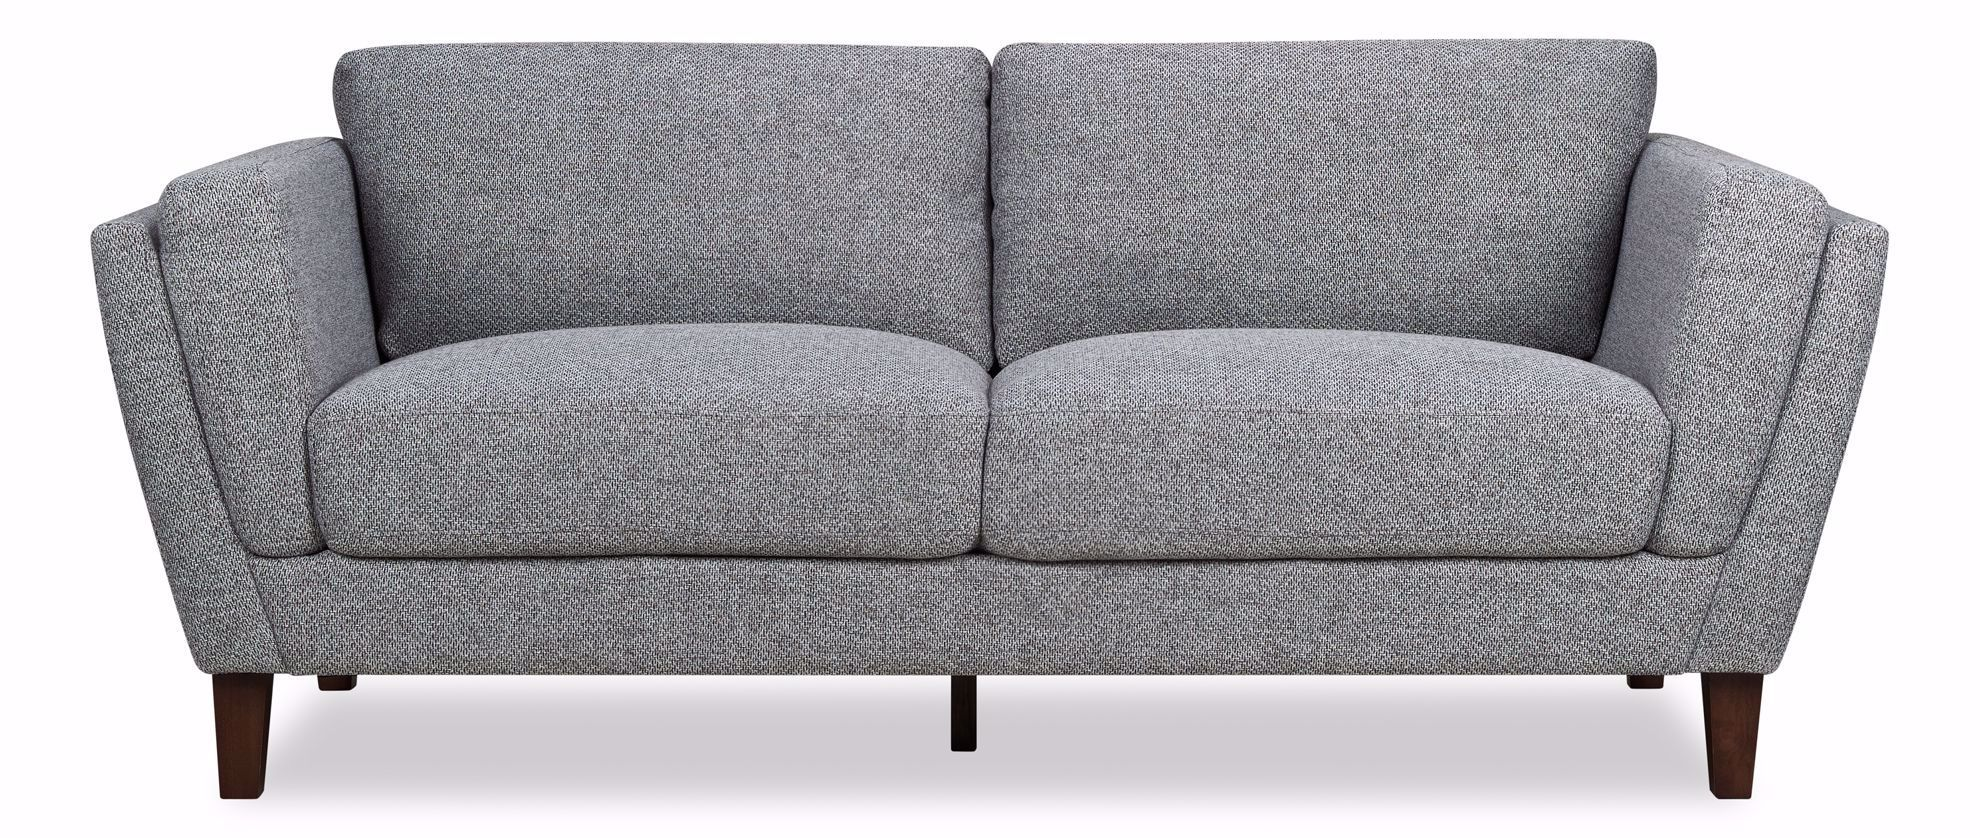 Picture of Hughes Grey Tweed Sofa